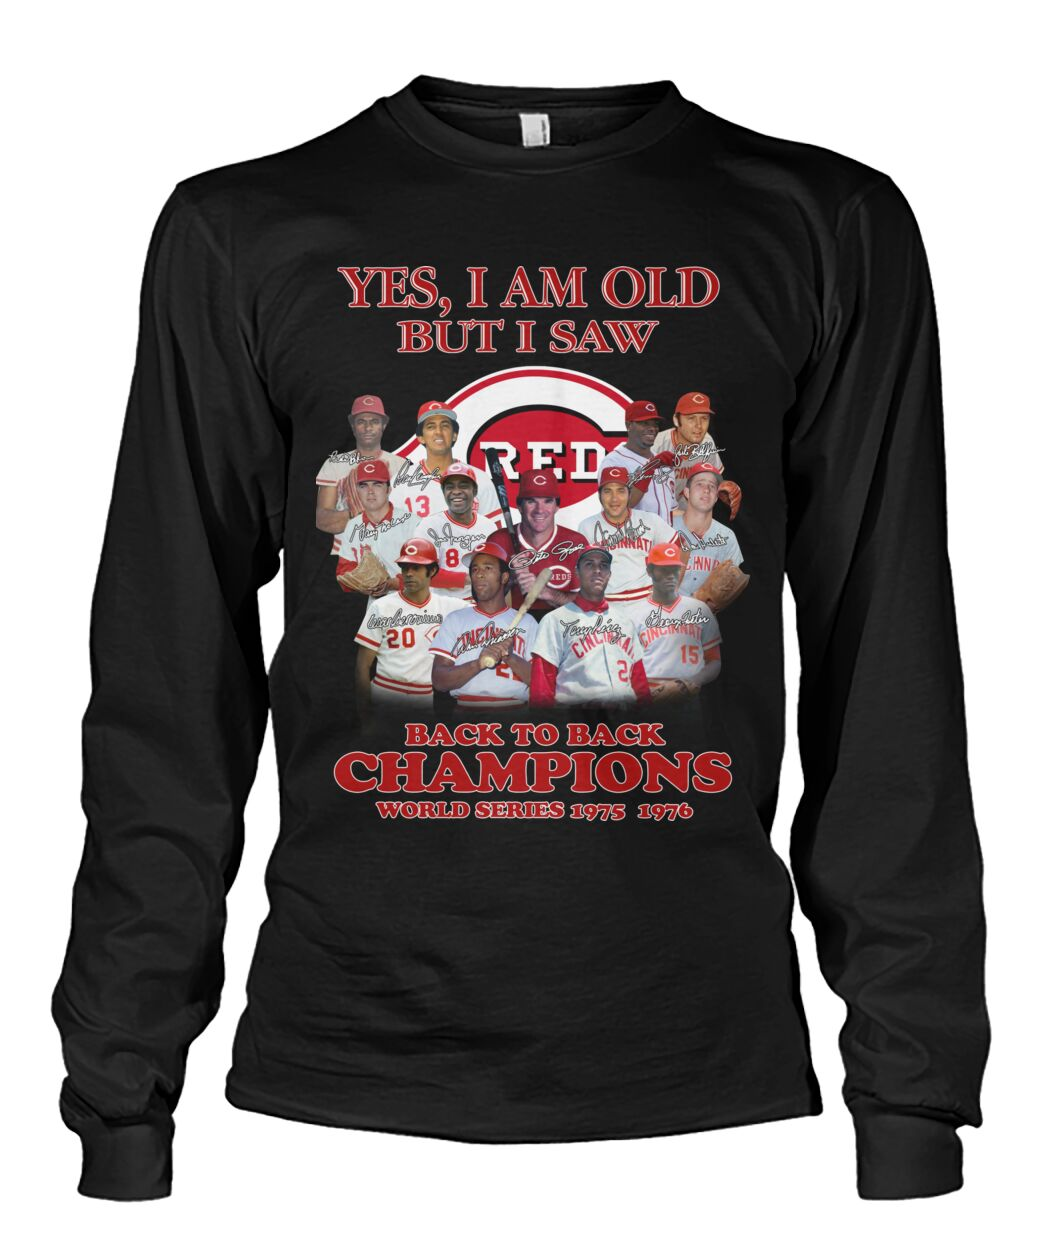 Yes I am old but I saw Cincinnati Reds MLB back to back world champions world series 1975 1976 long sleeve